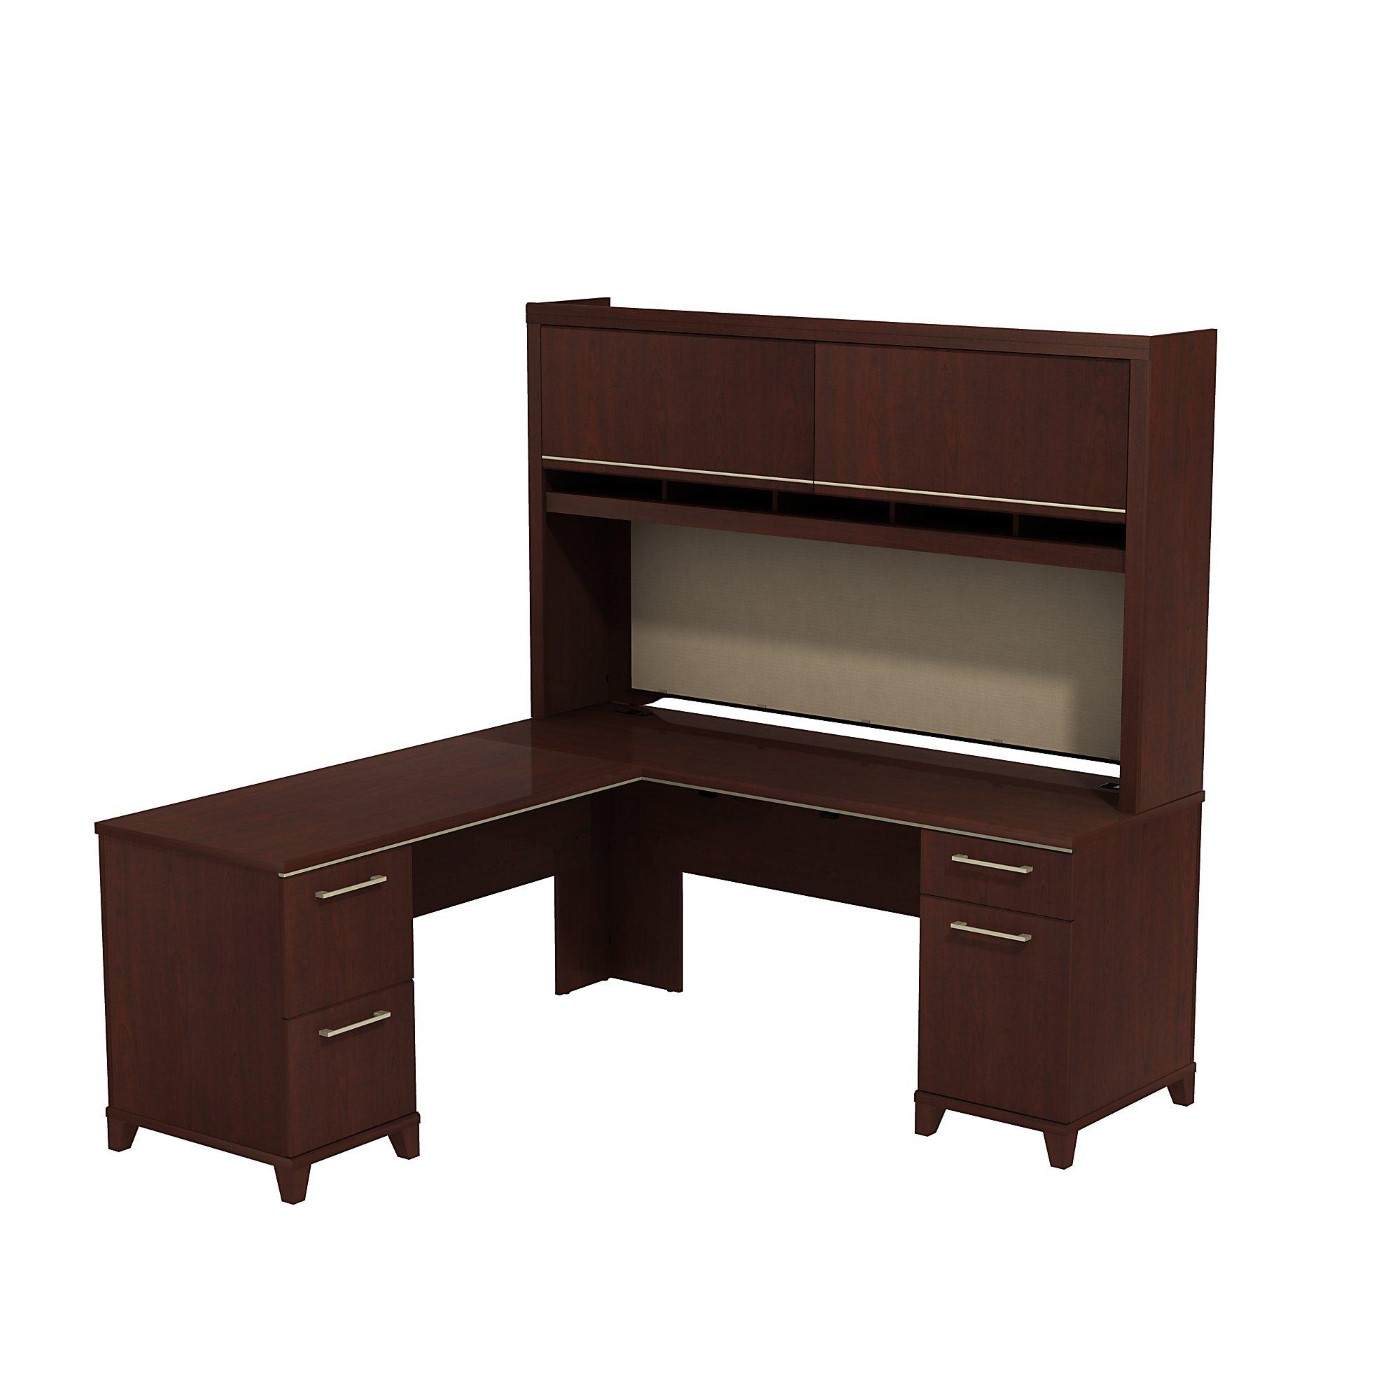 <font color=#c60><b>BUSH BUSINESS FURNITURE ENTERPRISE 72W X 72D L SHAPED DESK WITH HUTCH #EH-ENT008CS. FREE SHIPPING</font></b></font></b>